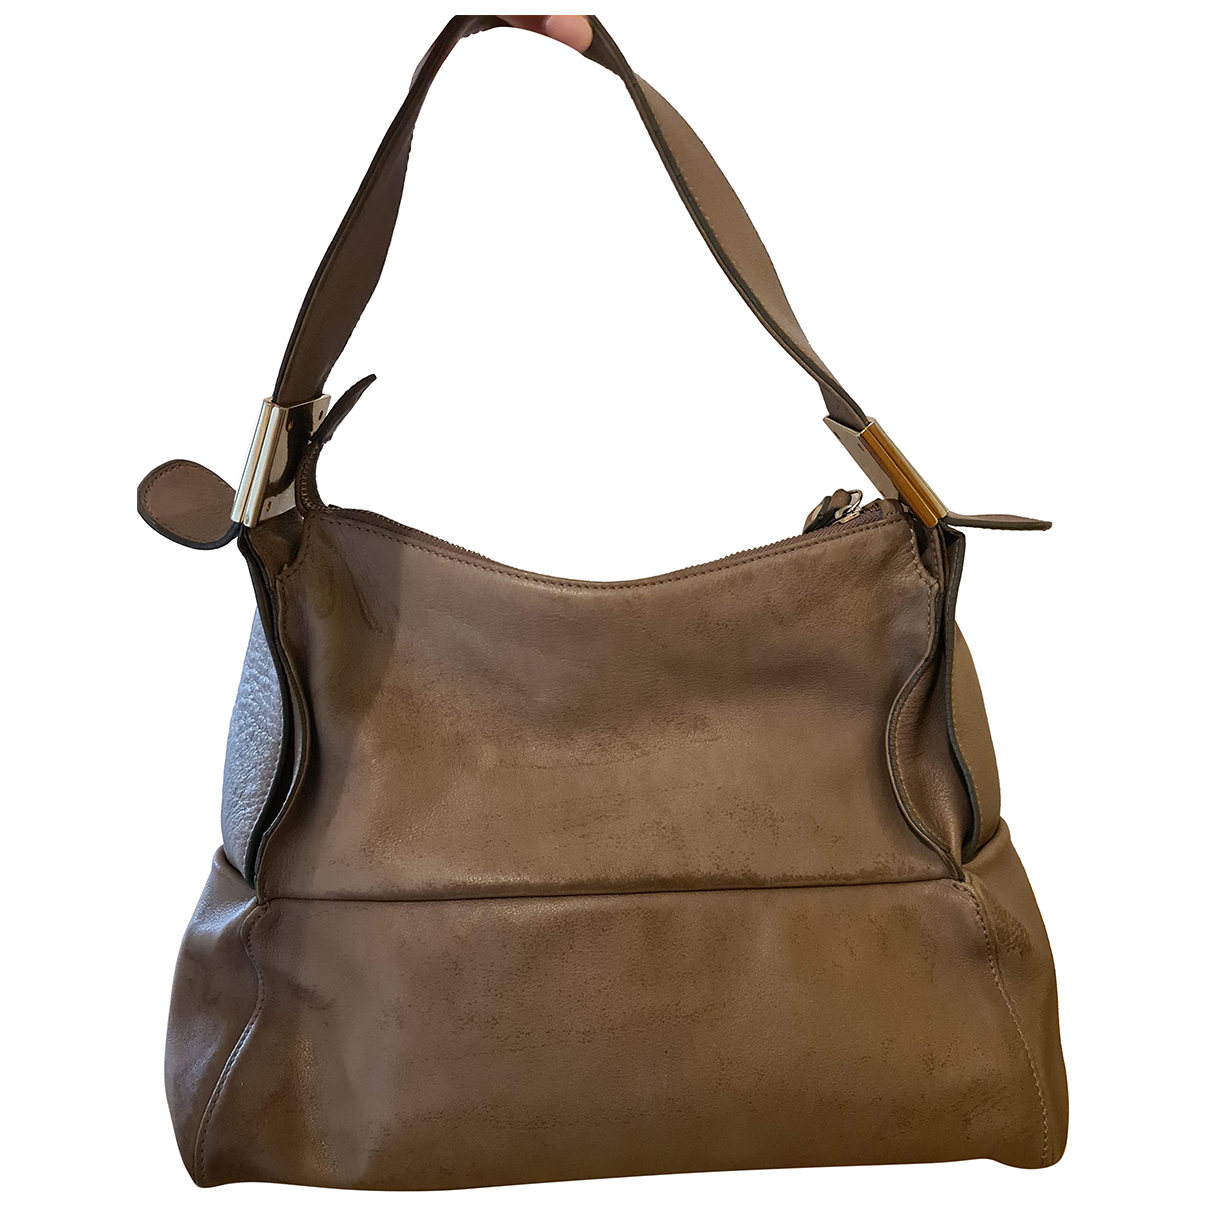 Coccinelle N Leather handbag for Women N